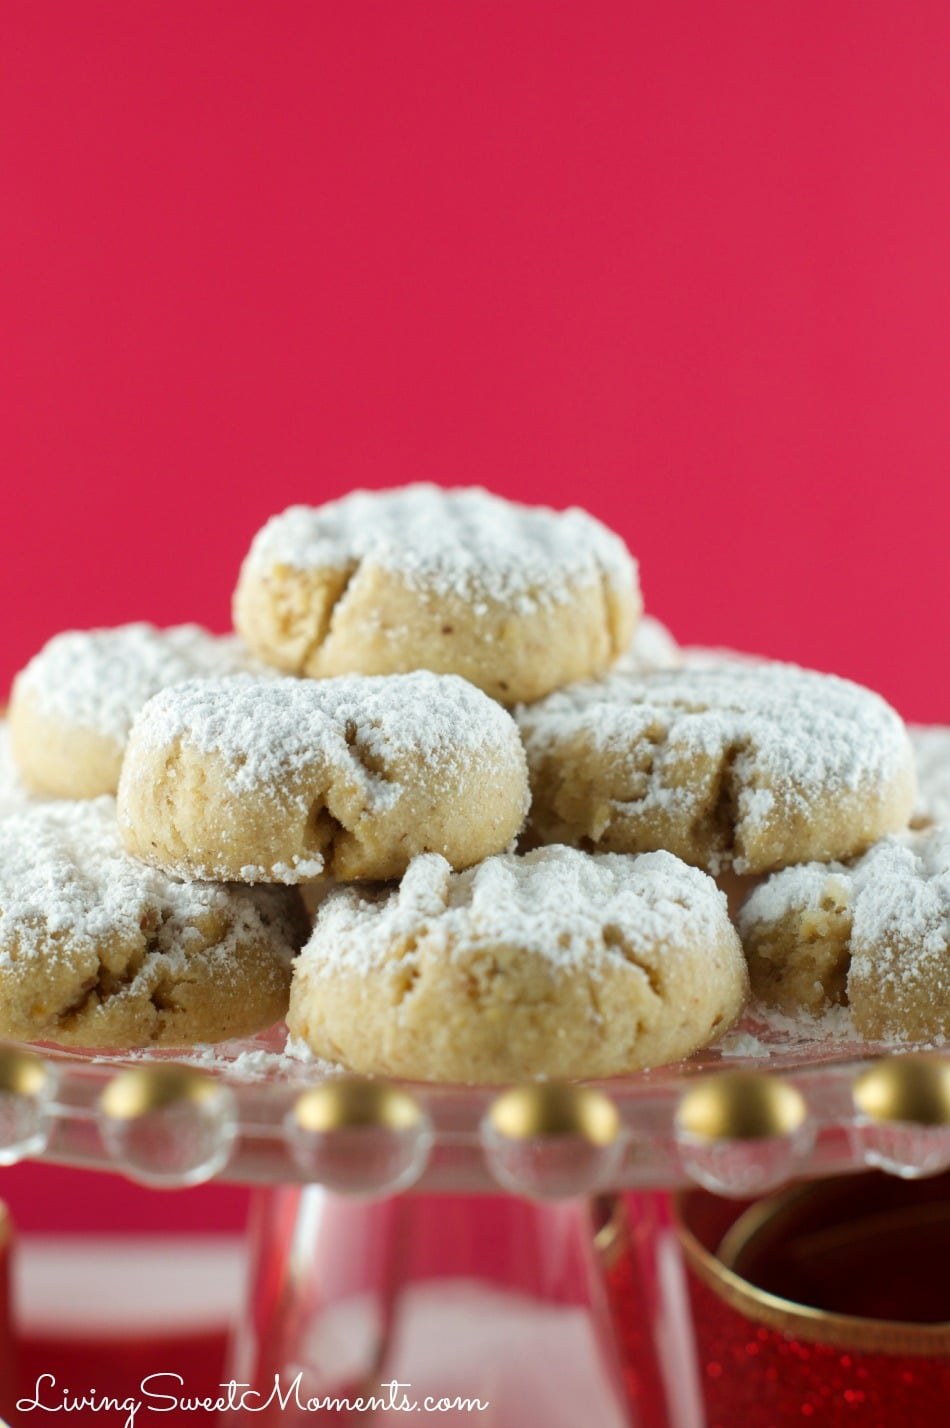 This delicious Walnut Snowball cookies recipe is vegan, easy to make, and delicious! Made with walnut oil is the perfect Christmas cookie recipe for parties